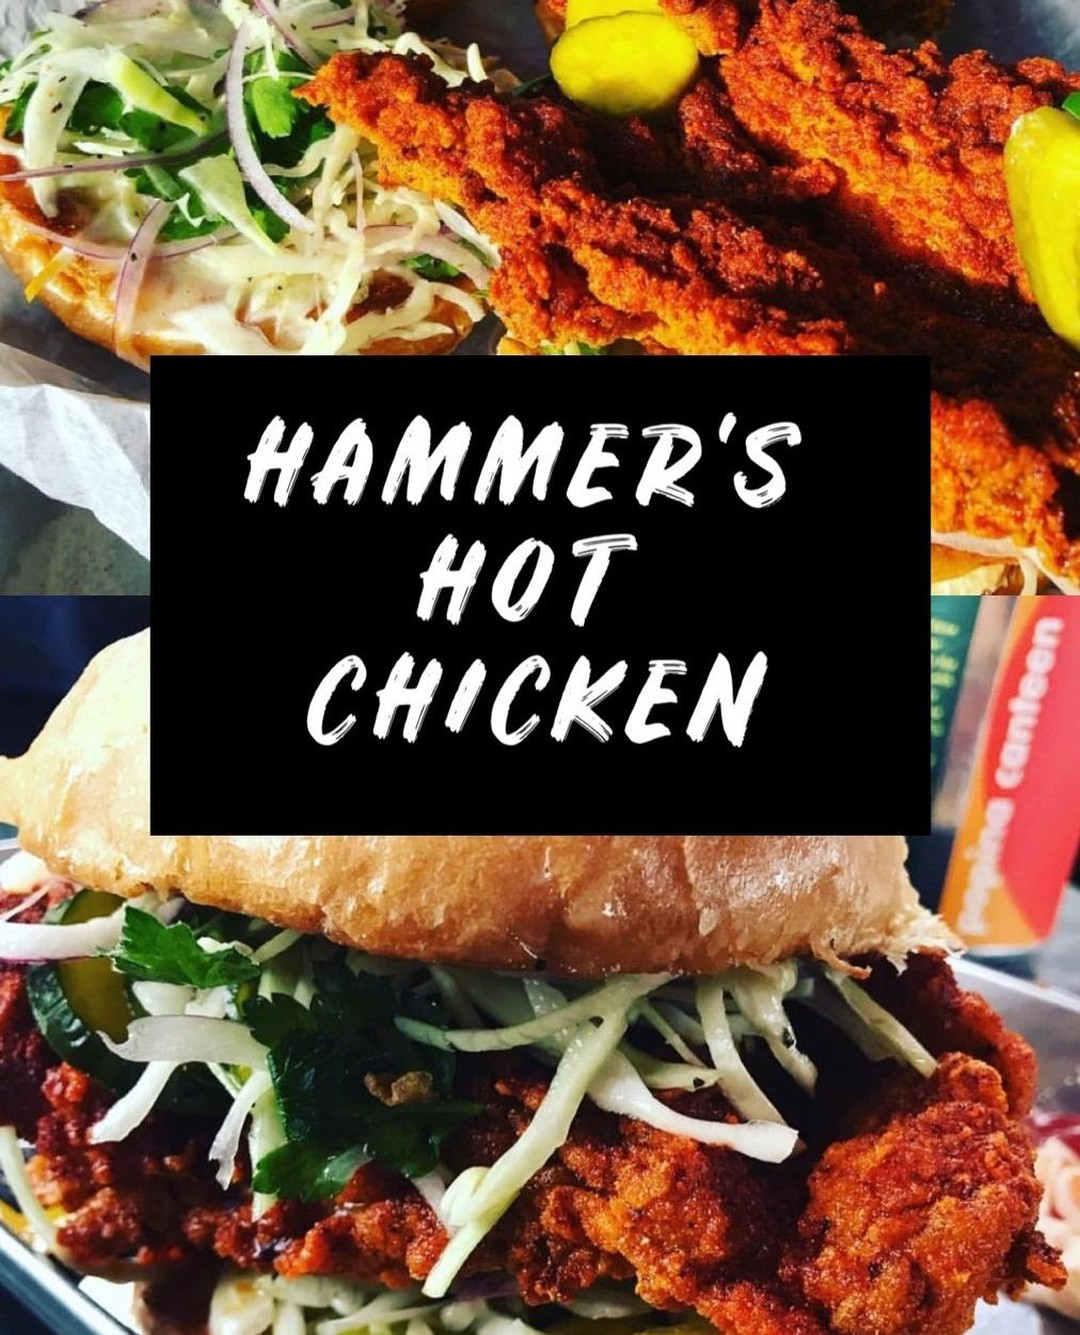 Hammers-hot-chicken